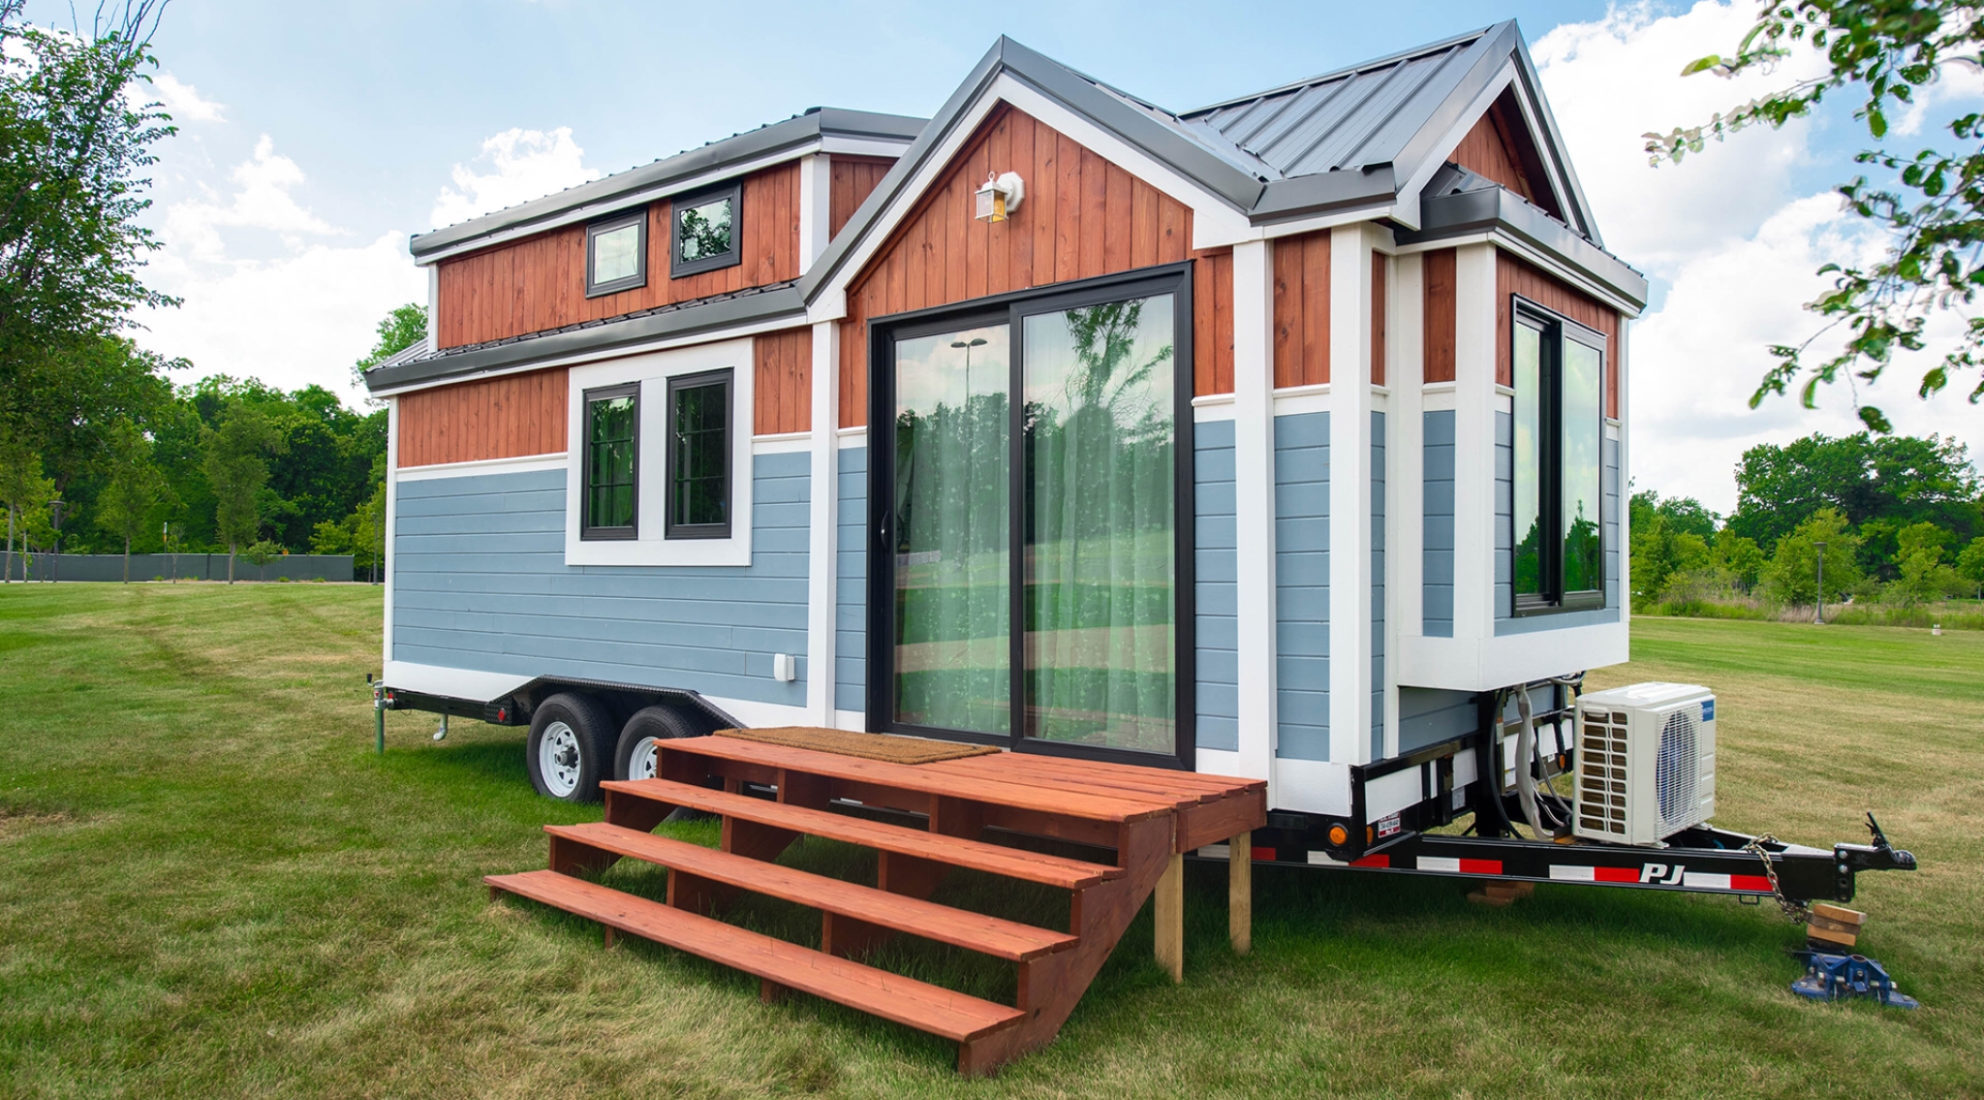 RE/MAX tiny home auction raises $47,000 for children's healthcare